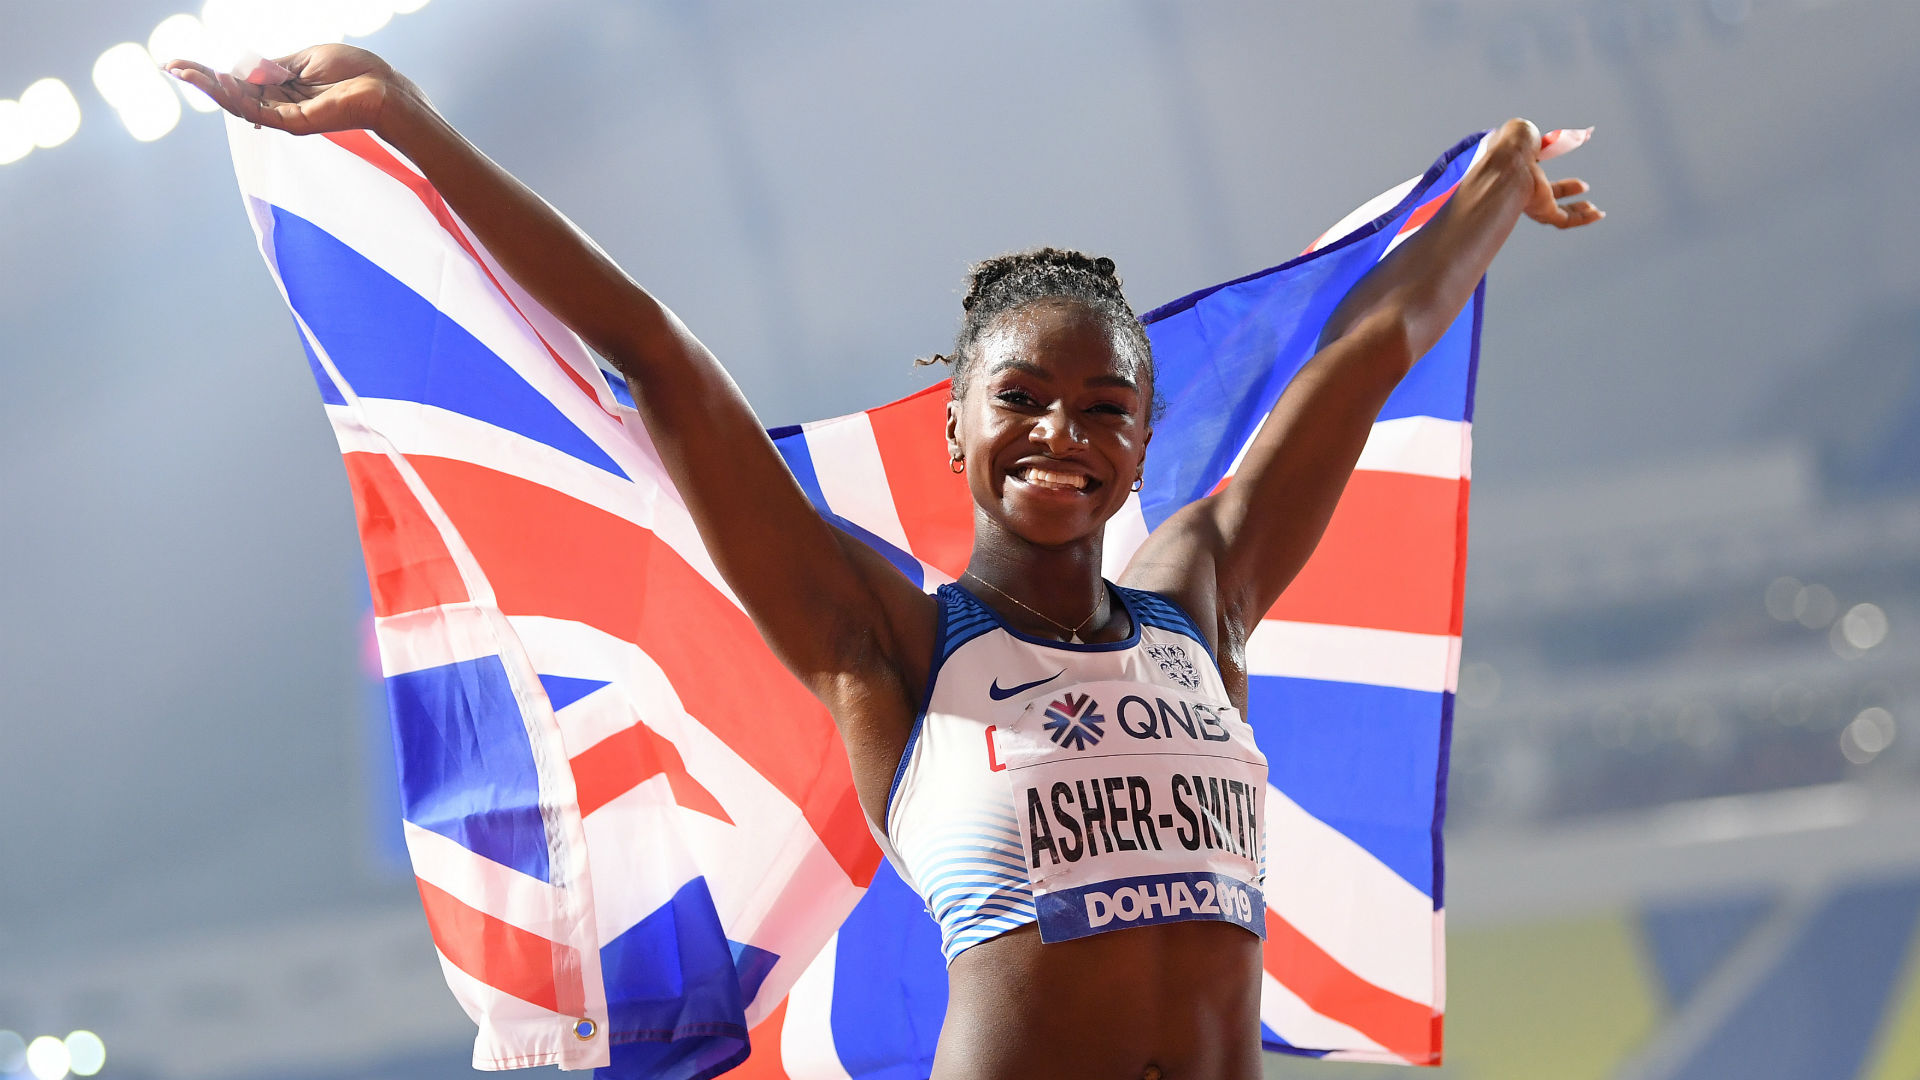 World Athletics Championships: Asher-Smith surges to 200m title